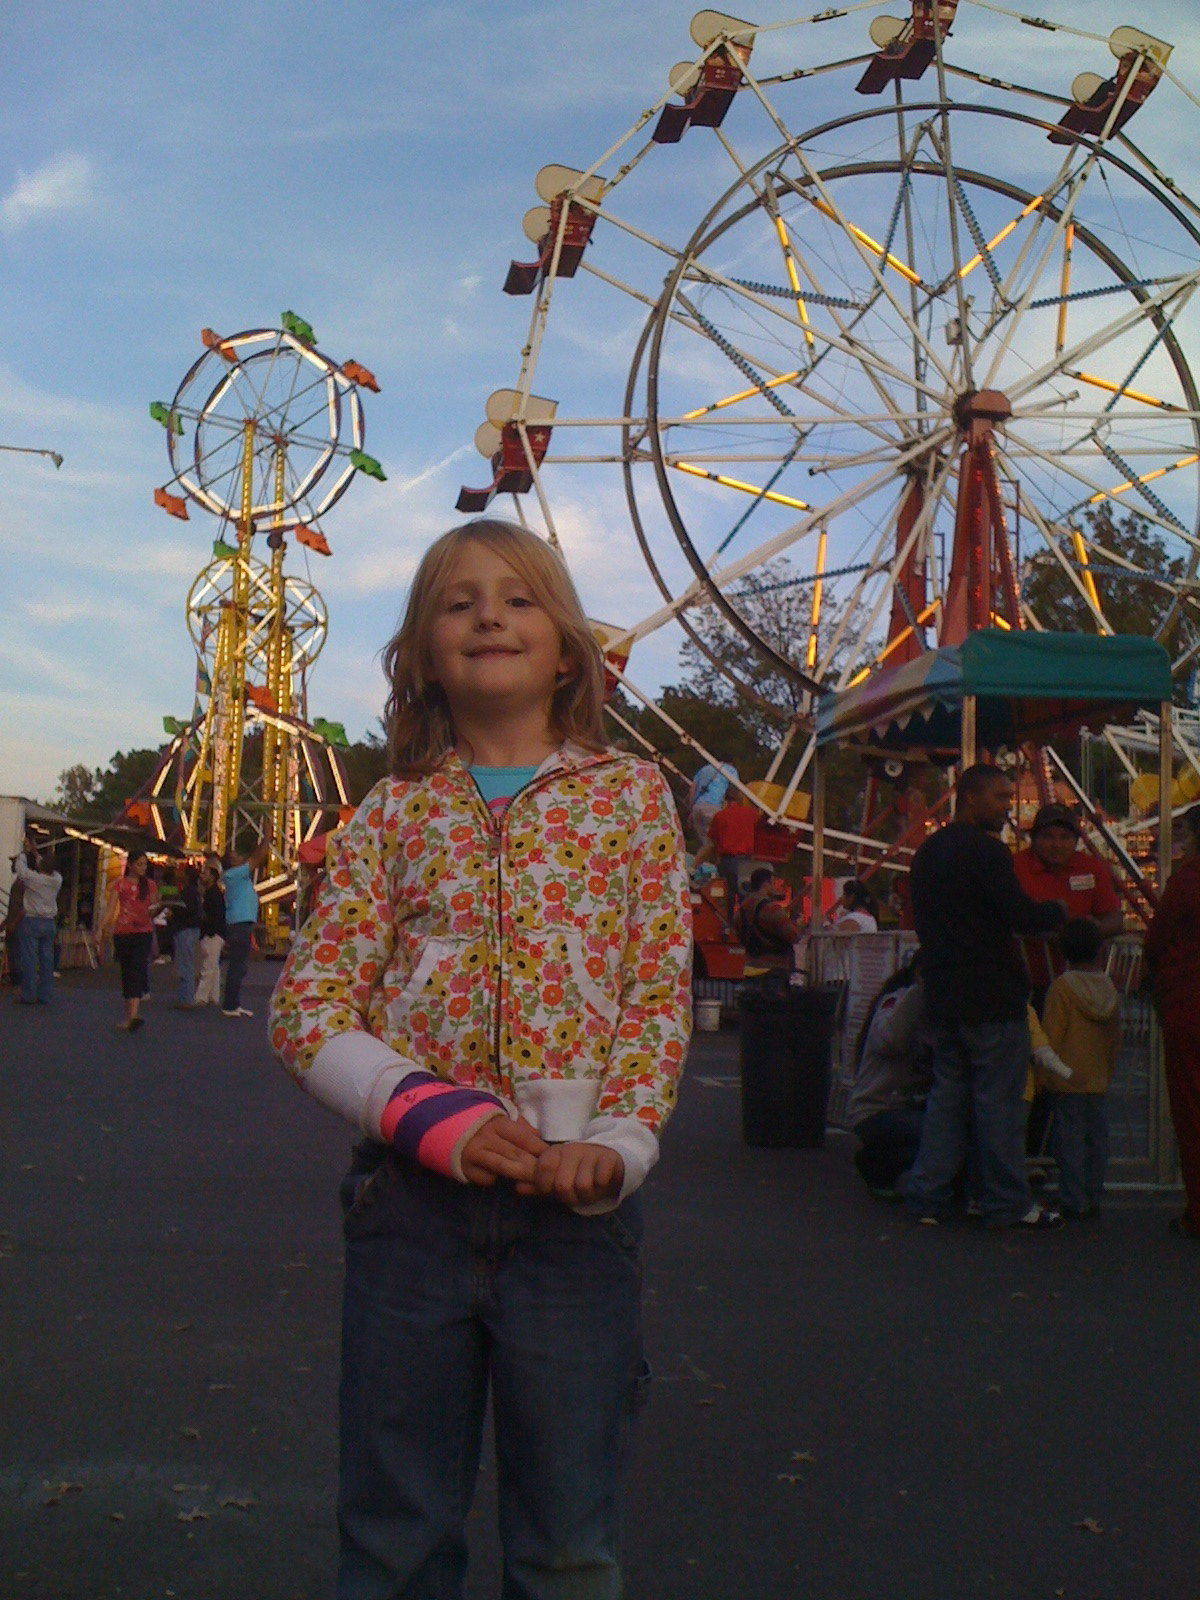 Tiller with the big ferris wheel and the little one, too.